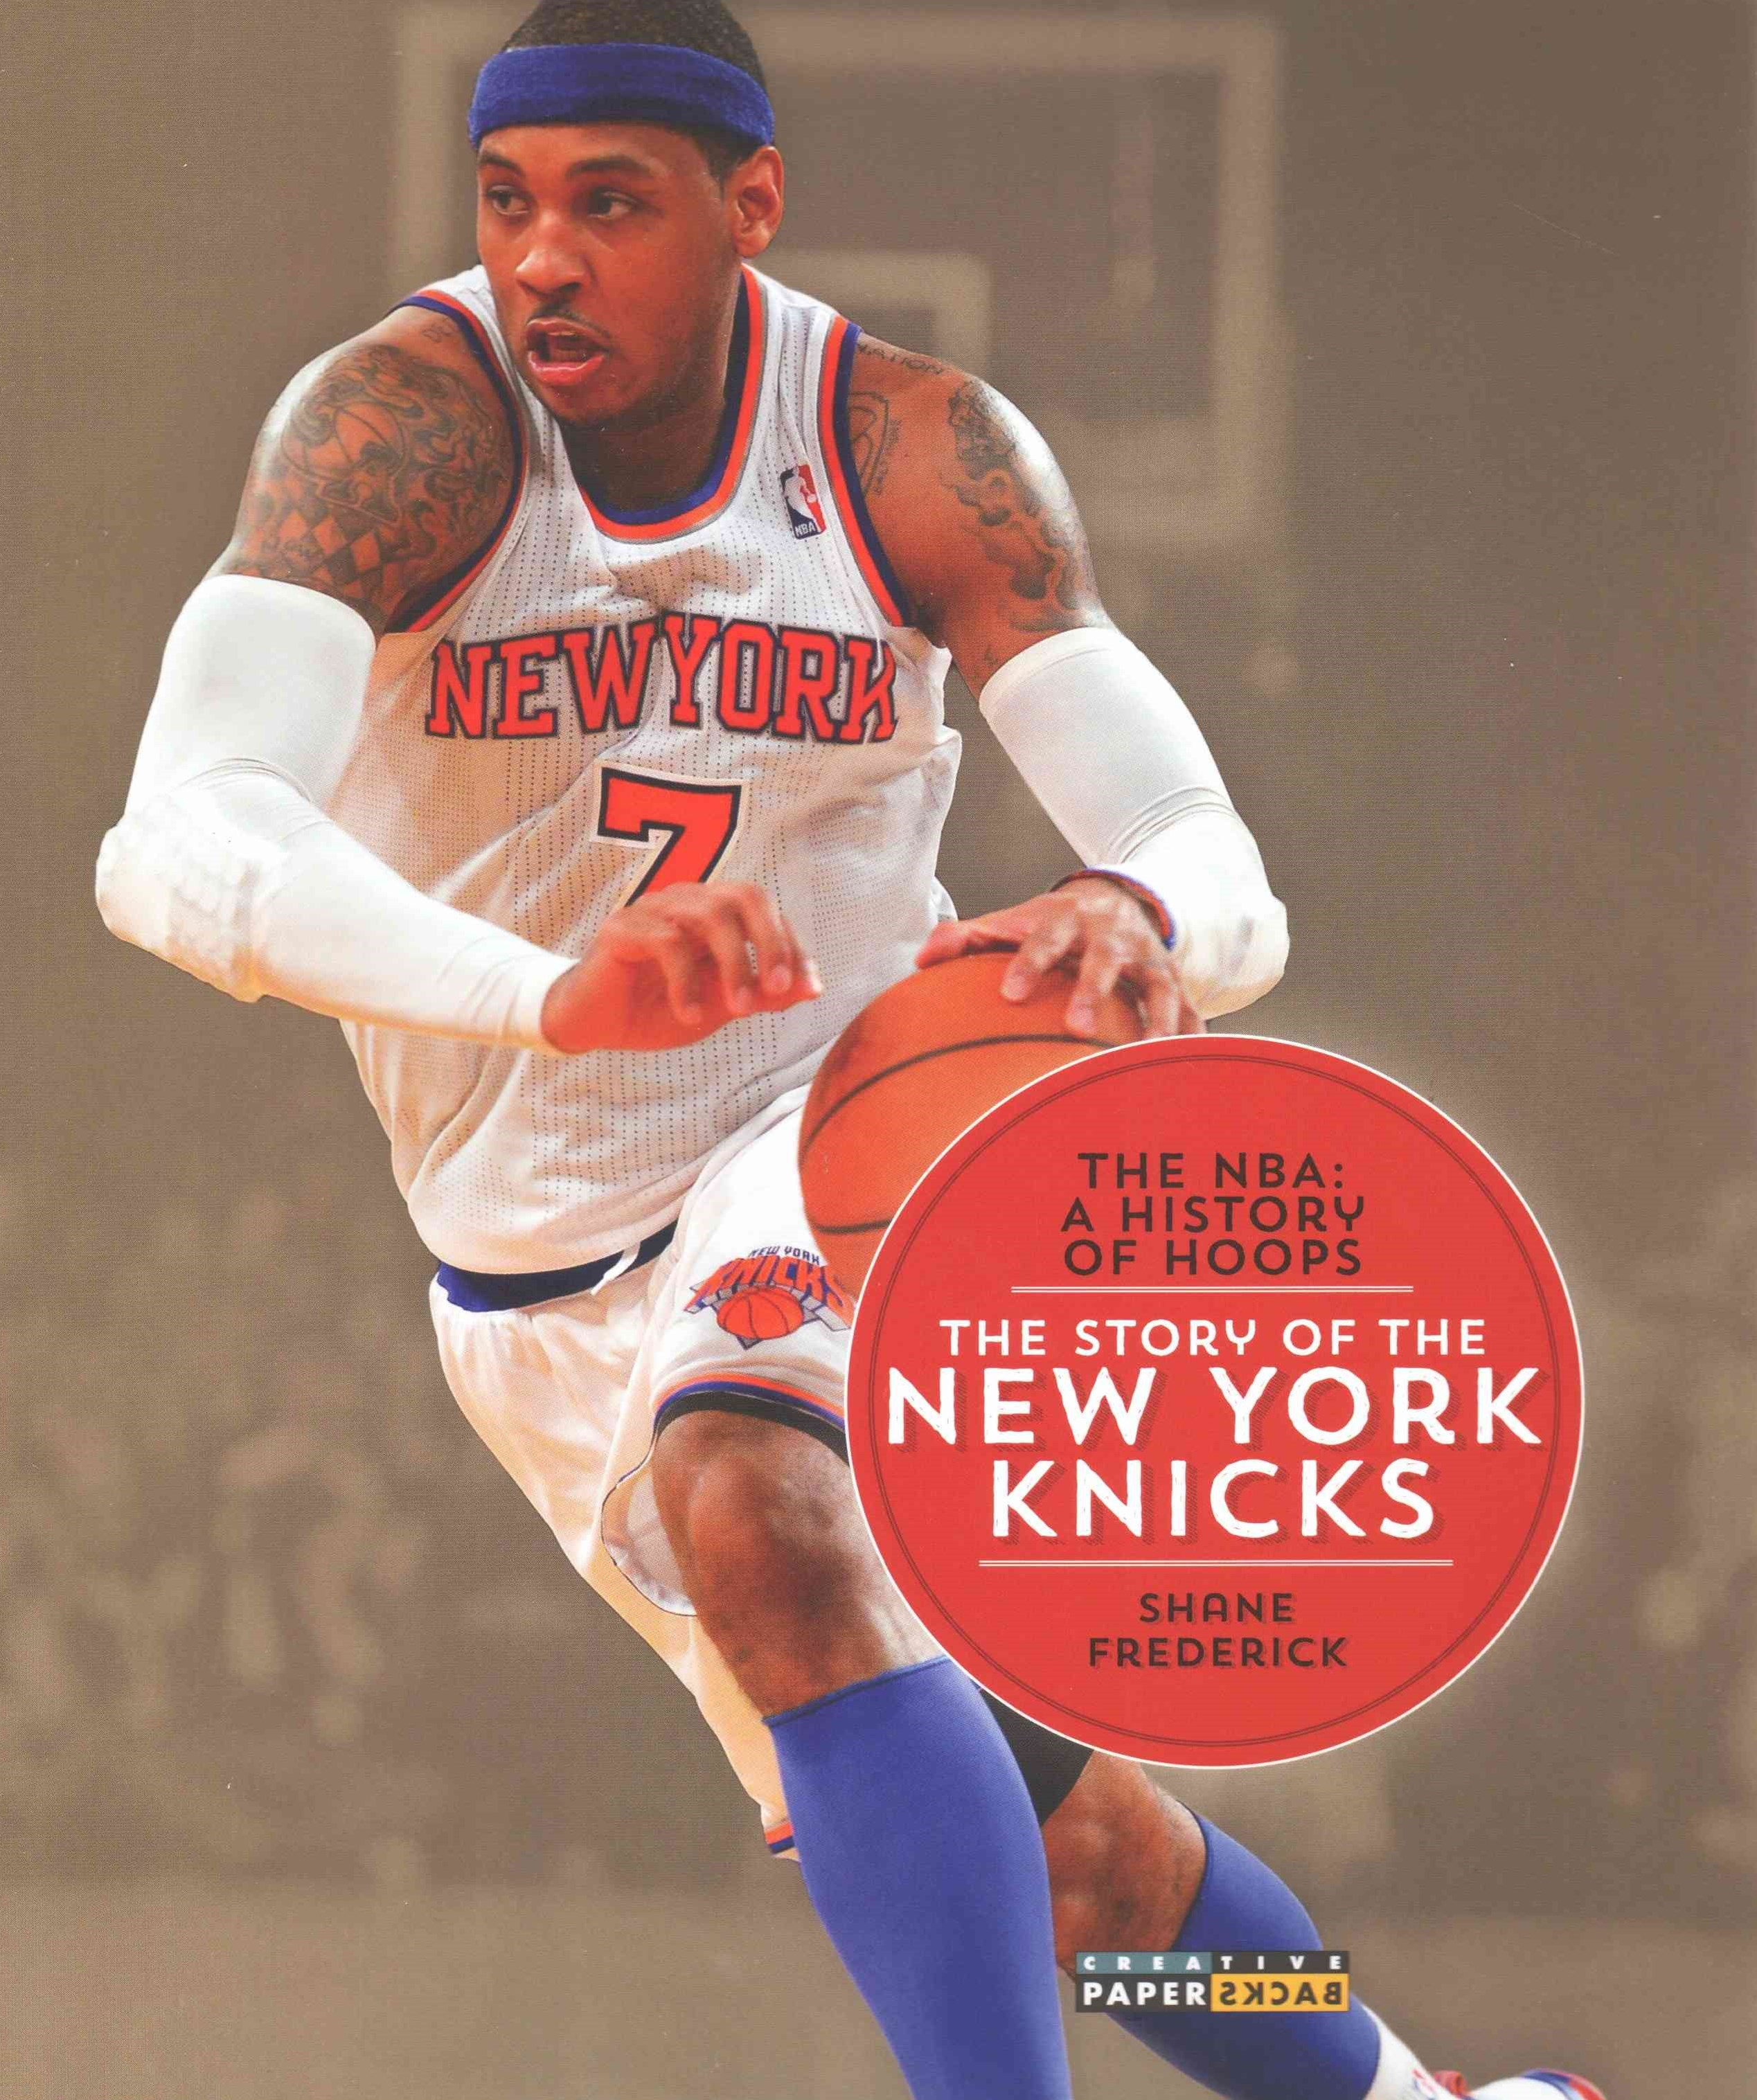 The NBA: a History of Hoops: the Story of the New York Knicks